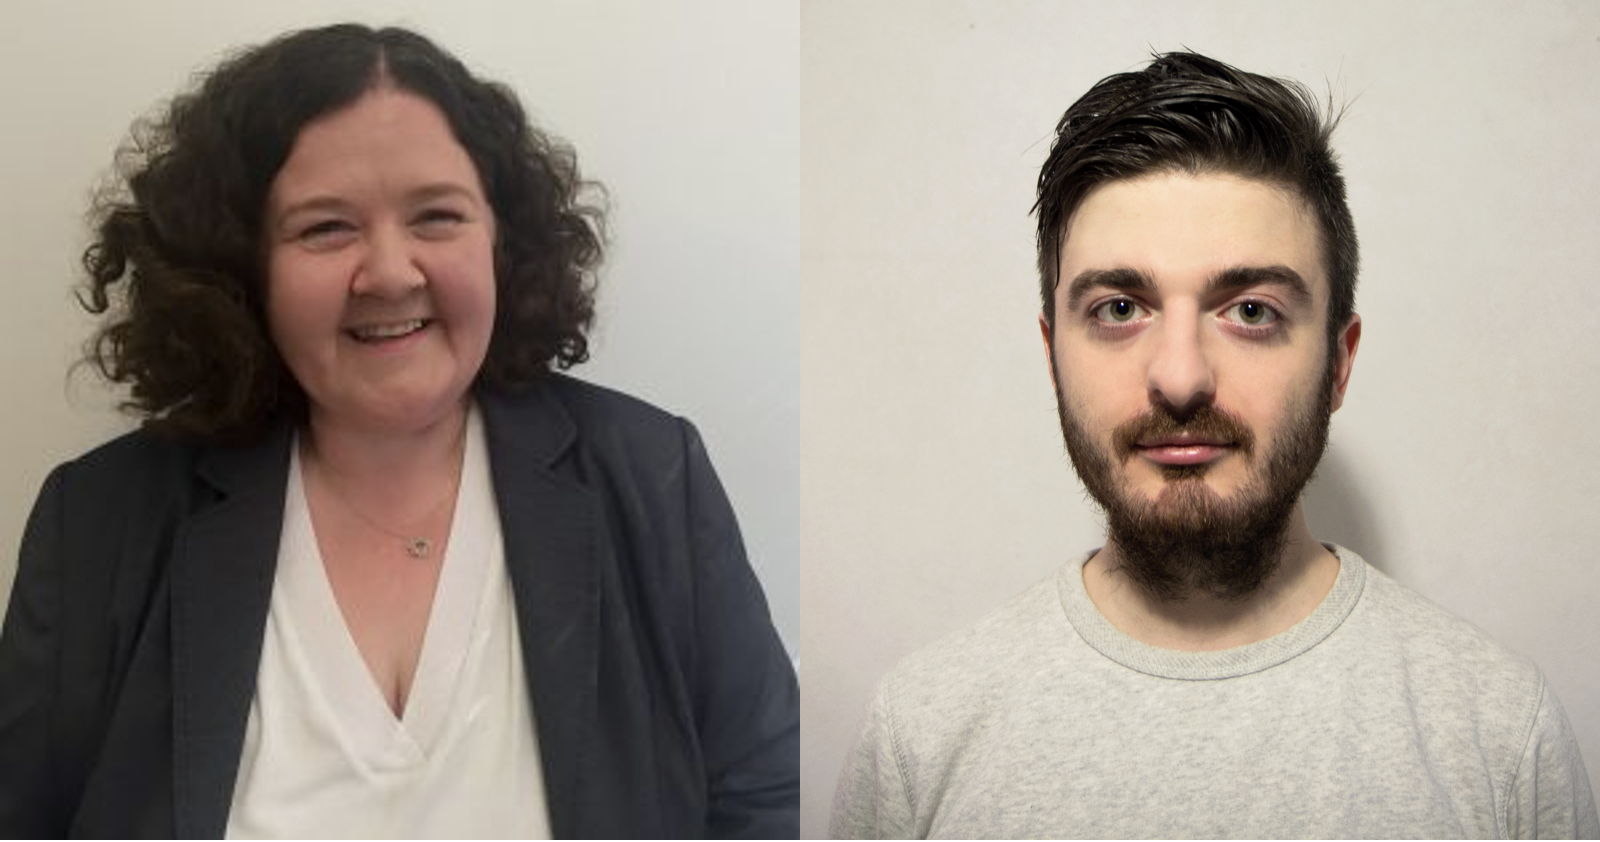 AdInMo strengthens its senior team with COO and VP Engineering appointments